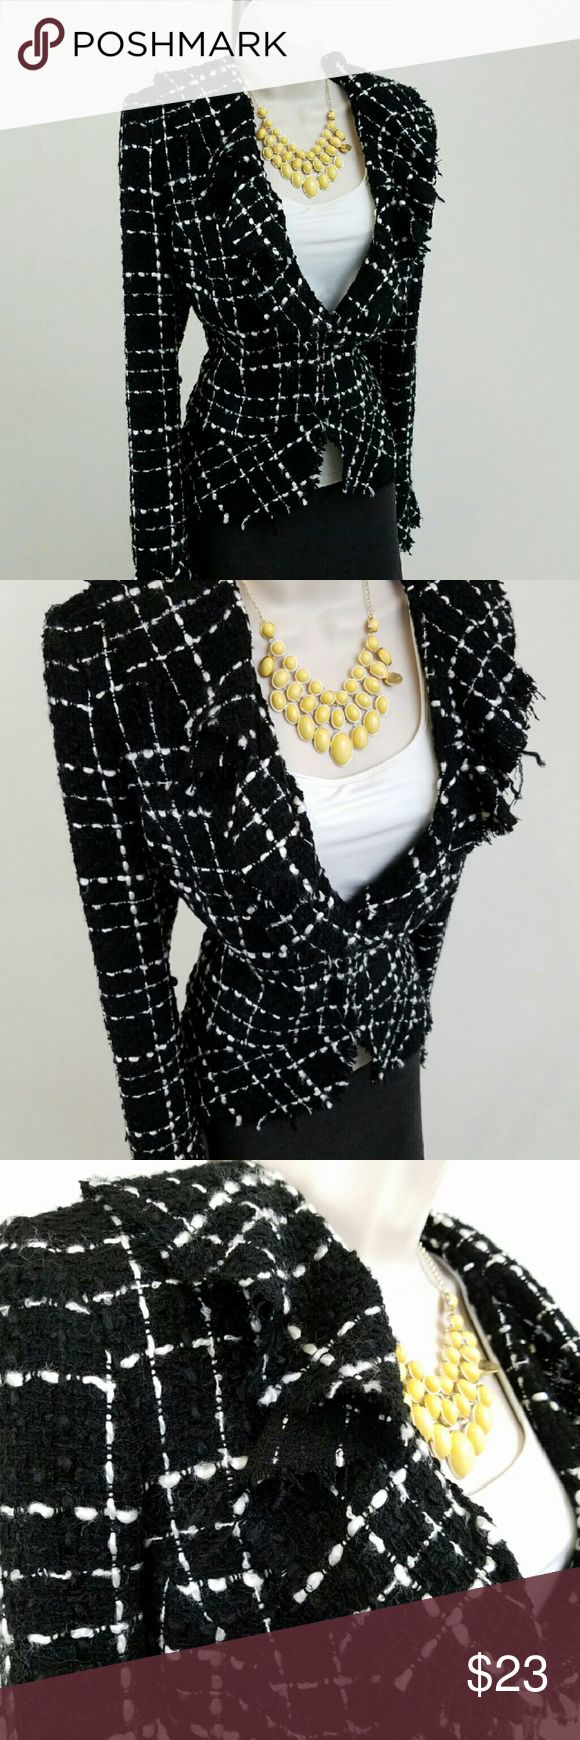 White House Black Market tweed jacket Black and white long-sleeved v-neck tweed jacket featuring waterfall ruffle with frayed edges, front hook-and-eye closure, and light shoulder pads.  Lined.  Bust 20.5 / waist 18.5 / length 22.5 inches.  100% acrylic.    Thanks for visiting my closet!  I add listings every week; come back soon & see what's new! White House Black Market Jackets & Coats